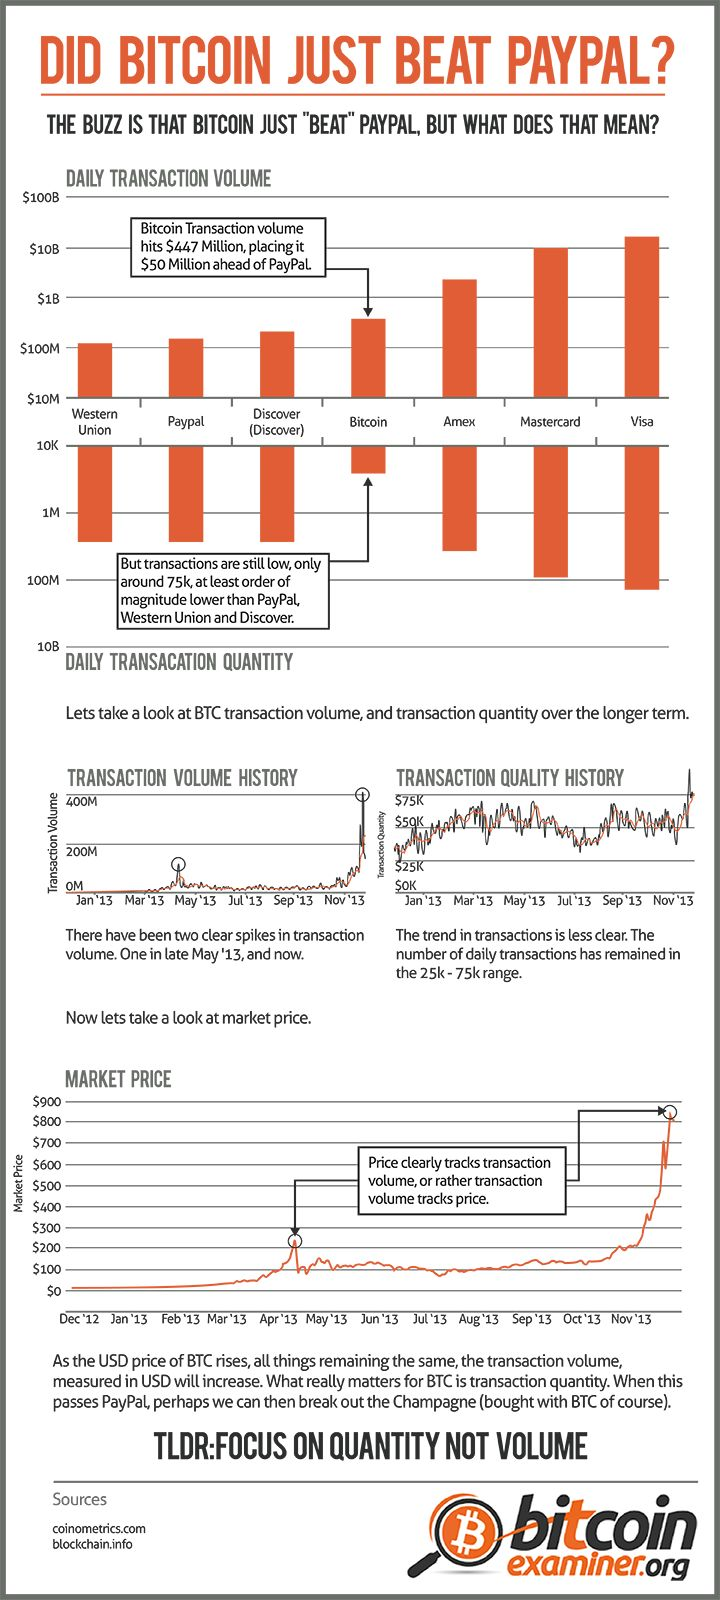 Did Bitcoin just beat Paypal? [Infographic]